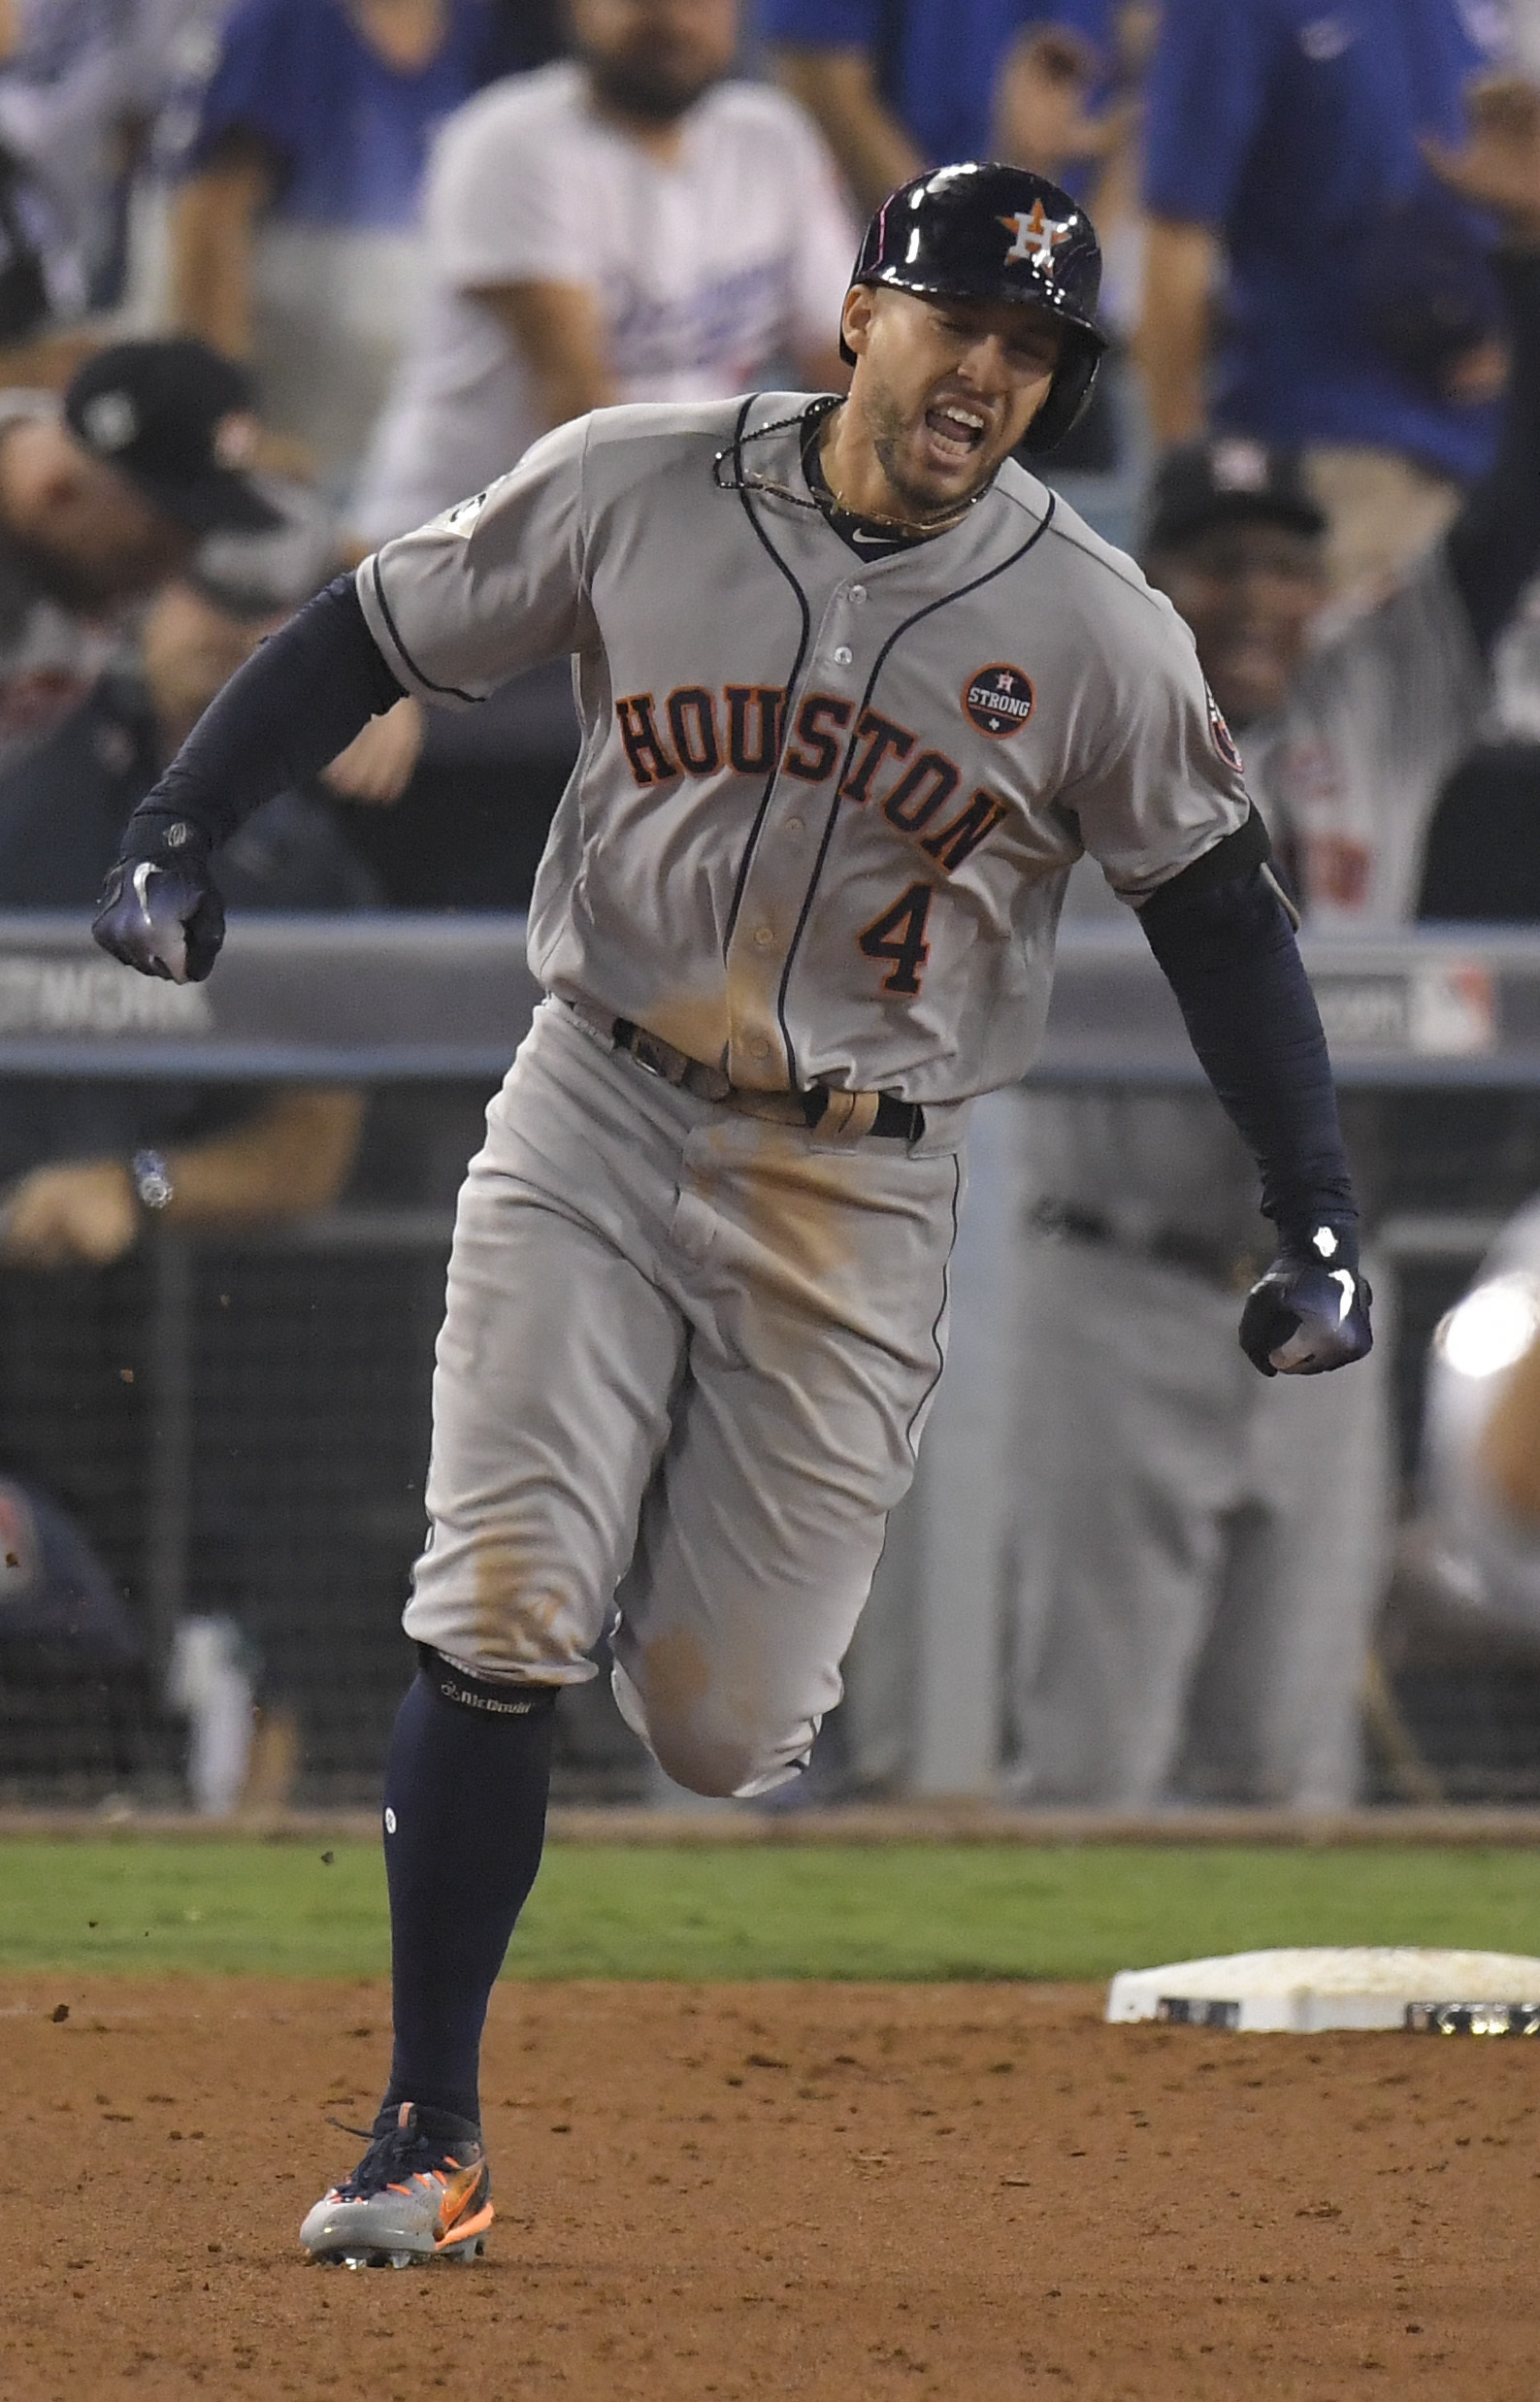 Houston Astros' George Springer celebrates after a home run against the Los Angeles Dodgers during the 11th inning of Game 2 of baseball's World Series Wednesday, Oct. 25, 2017, in Los Angeles. (AP Photo/Mark J. Terrill)